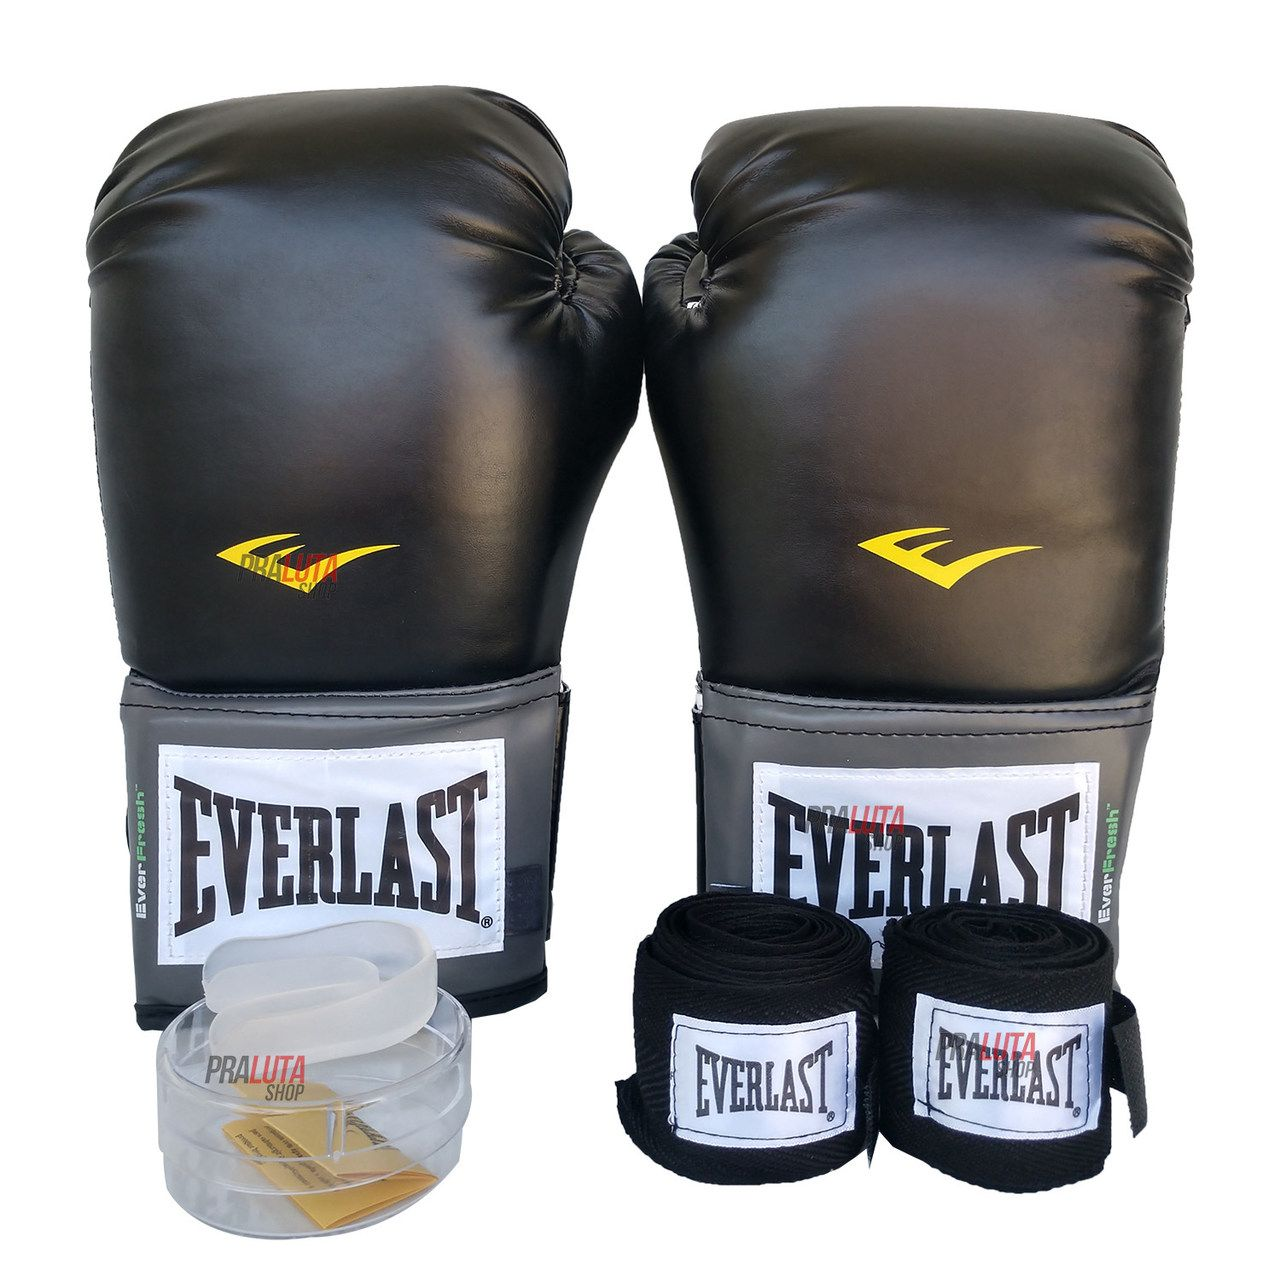 Kit de Boxe / Muay Thai 12oz - Preto - Training - Everlast  - PRALUTA SHOP